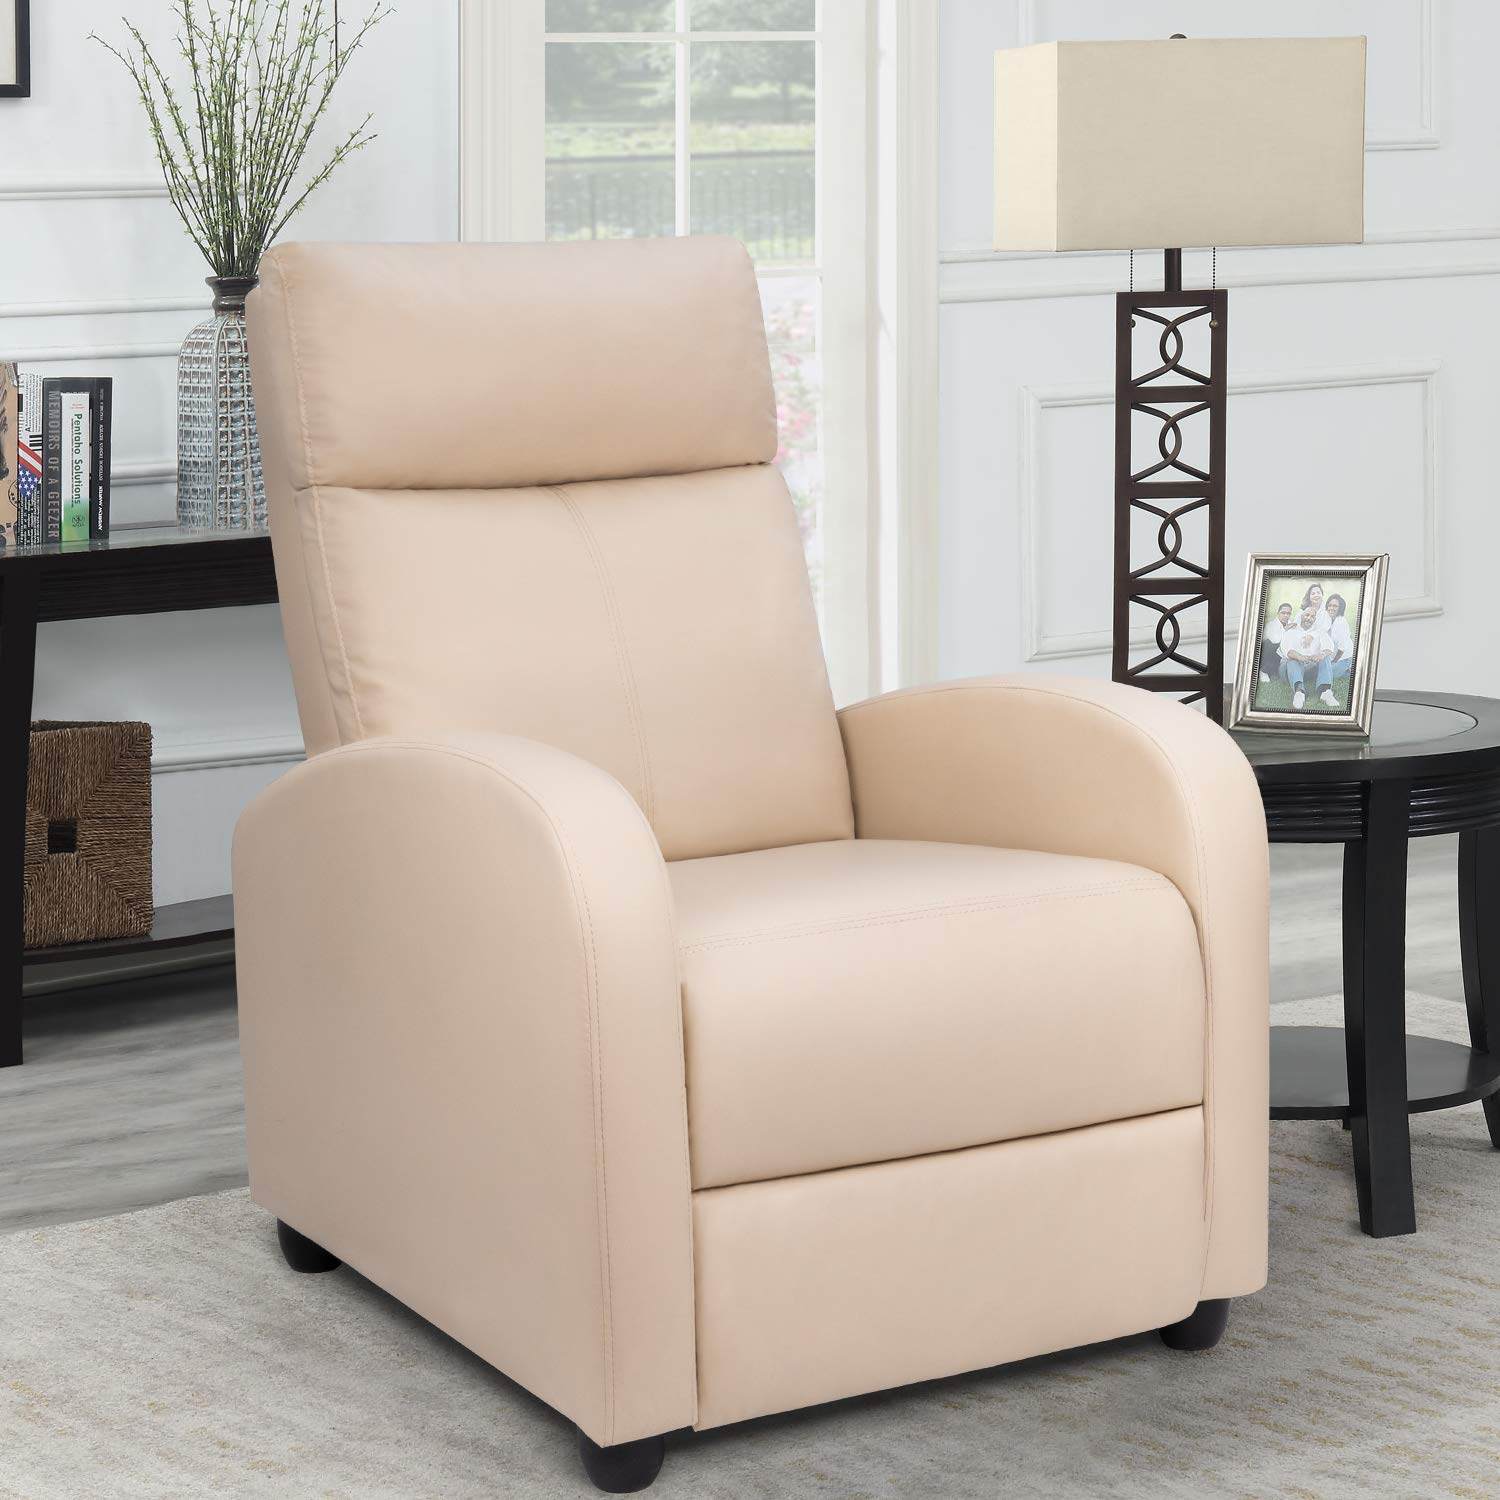 Sofa Recliner Modern Recliner Seat Club Chair Home Theater Seating (Beige)